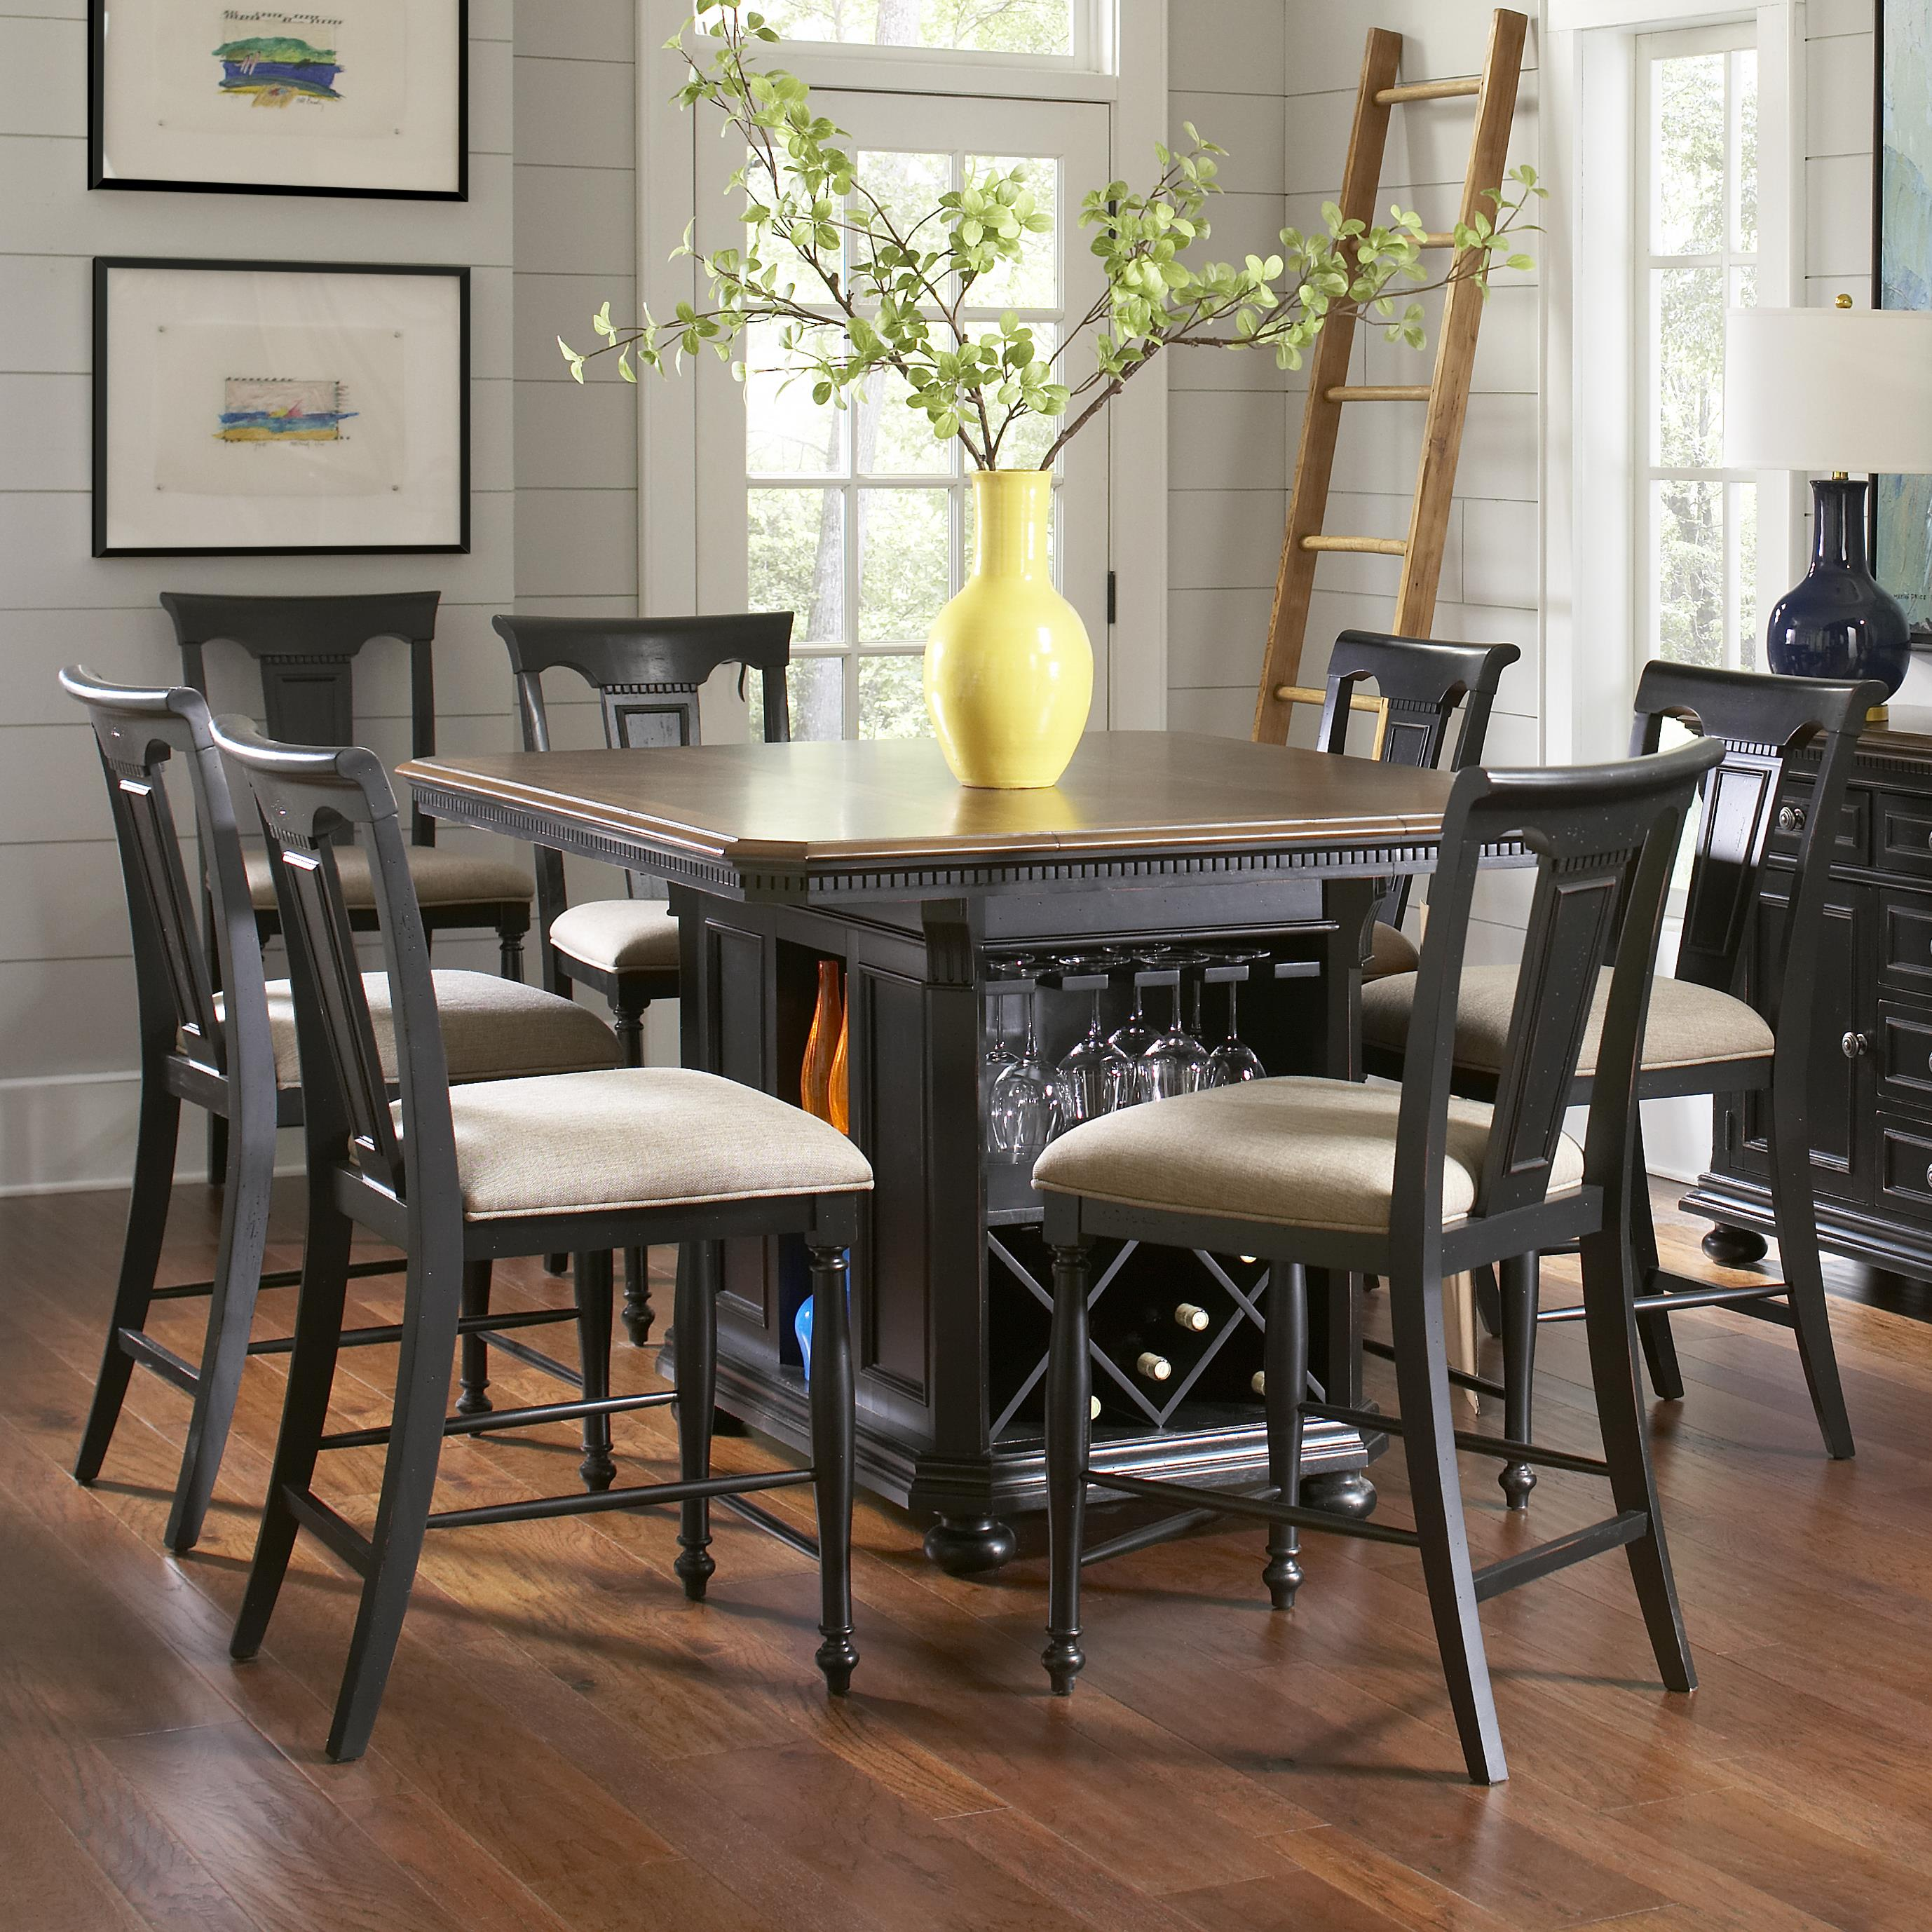 kitchen island table with chairs replacement drawer avalon furniture rivington hall traditional 7 piece